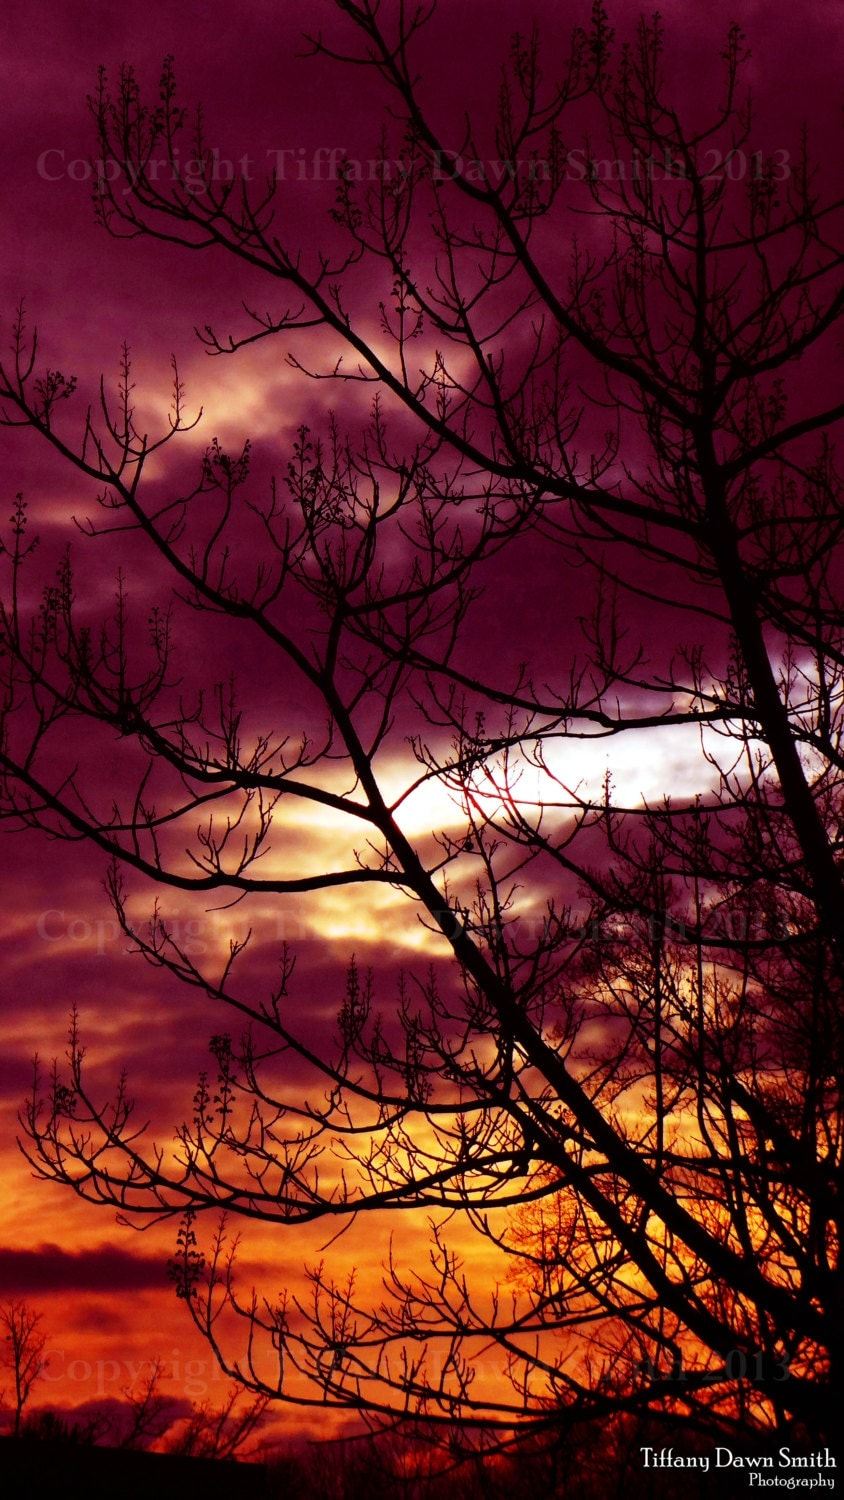 Nature Photography - Sunset, Clouds, Purple, Orange, Tree, Silhouette 8x12 Original Fine Art Photography Print - TiffanyDawnSmith